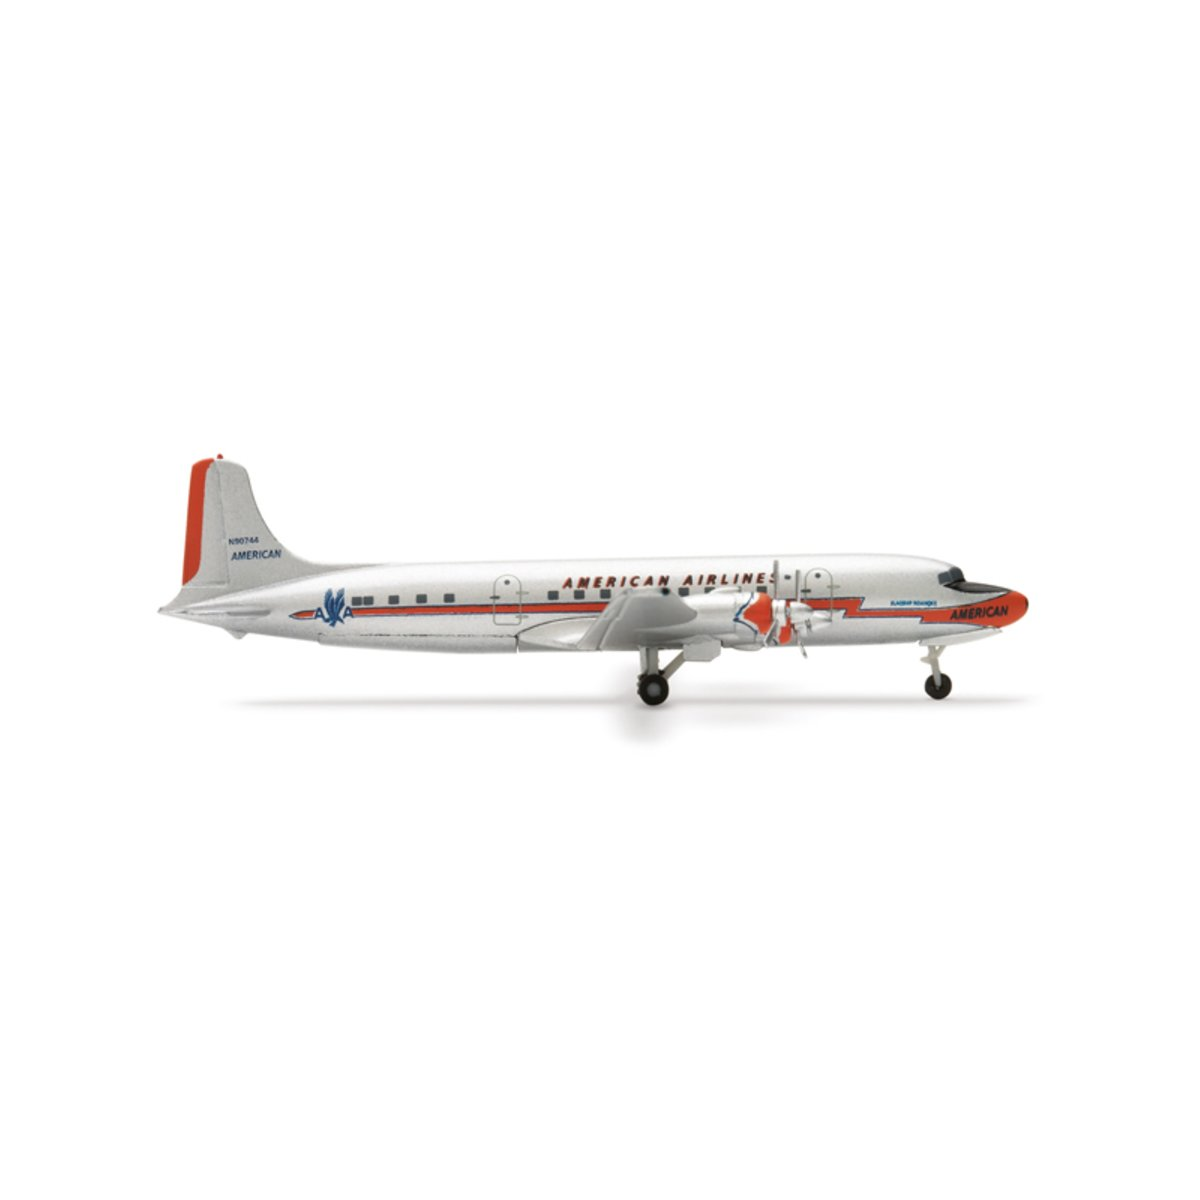 Model Airplane American Airlines® Douglas DC-6 1/500